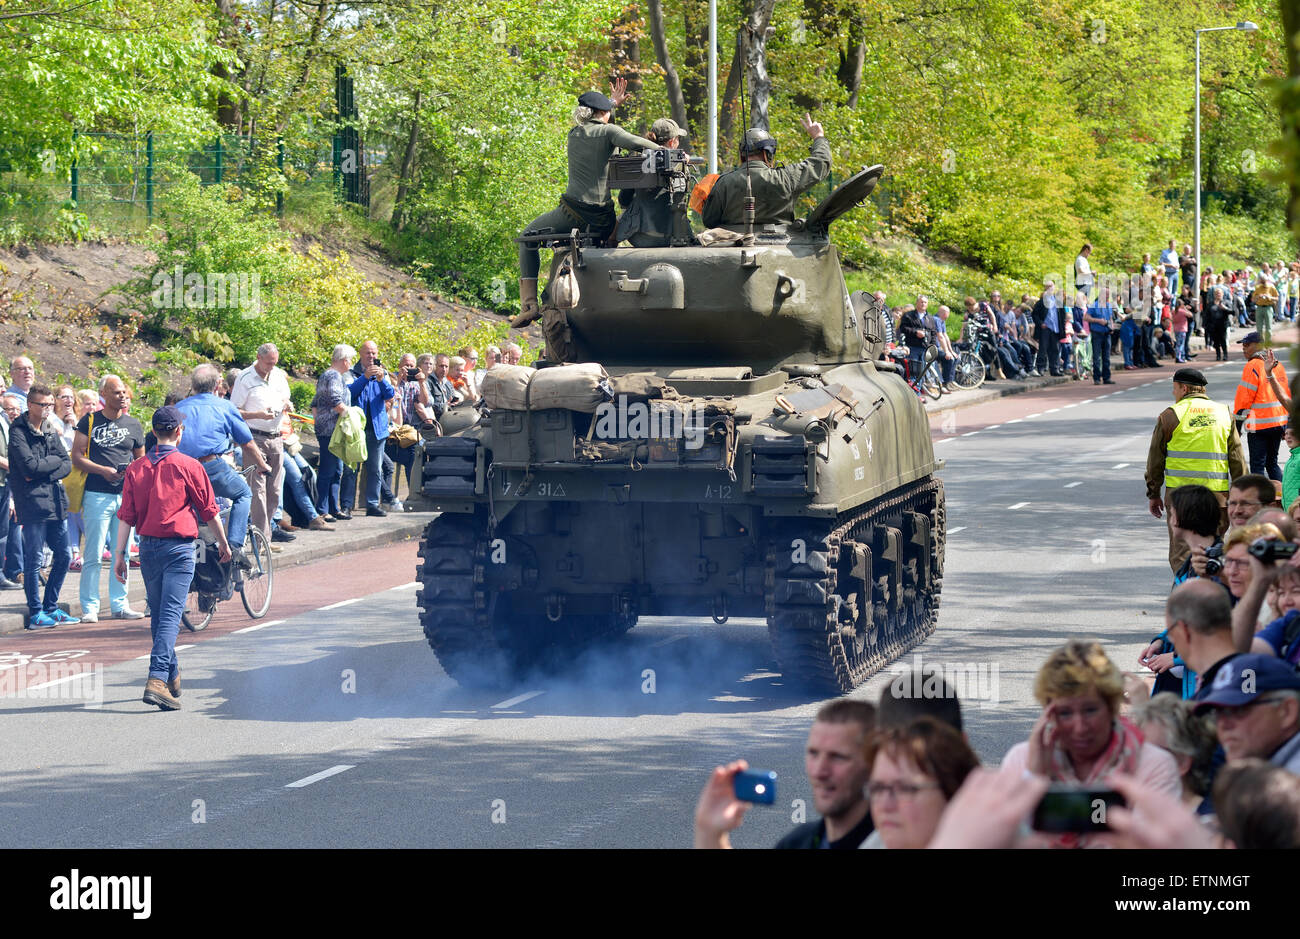 Remembrance parade with a Sherman tank on the fith of may, the day that The Netherlands remembers the liberation - Stock Image